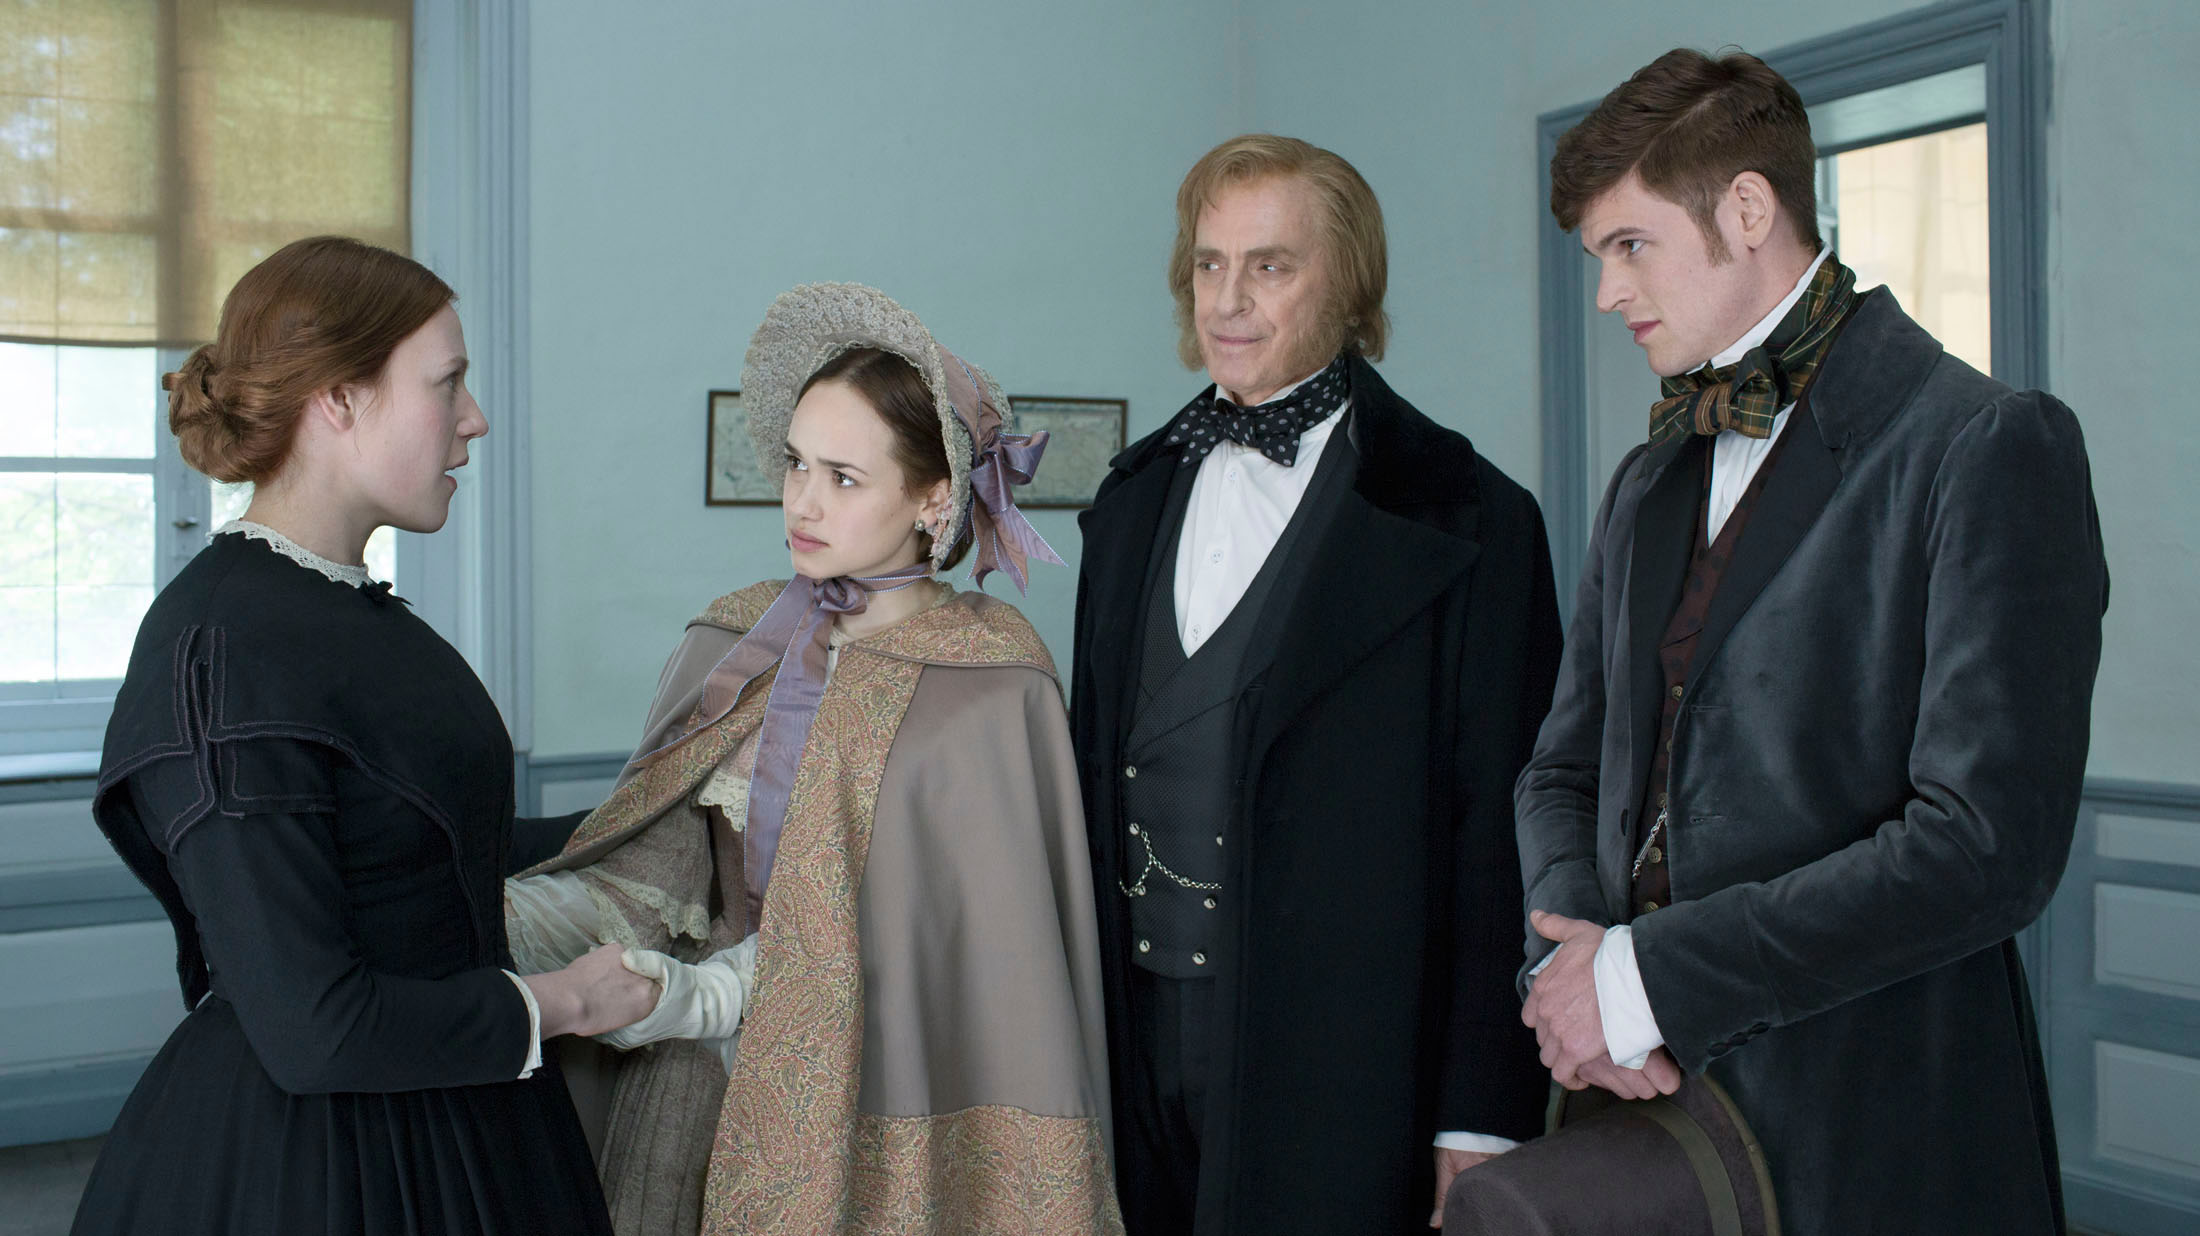 Emma Bell, Rose Williams, Keith Carradine and Benjamin Wainwright in A QUIET PASSION directed by Terrence Davies - DoP Florian Hoffmeister. Courtesy Hurricane Films/Potemkino